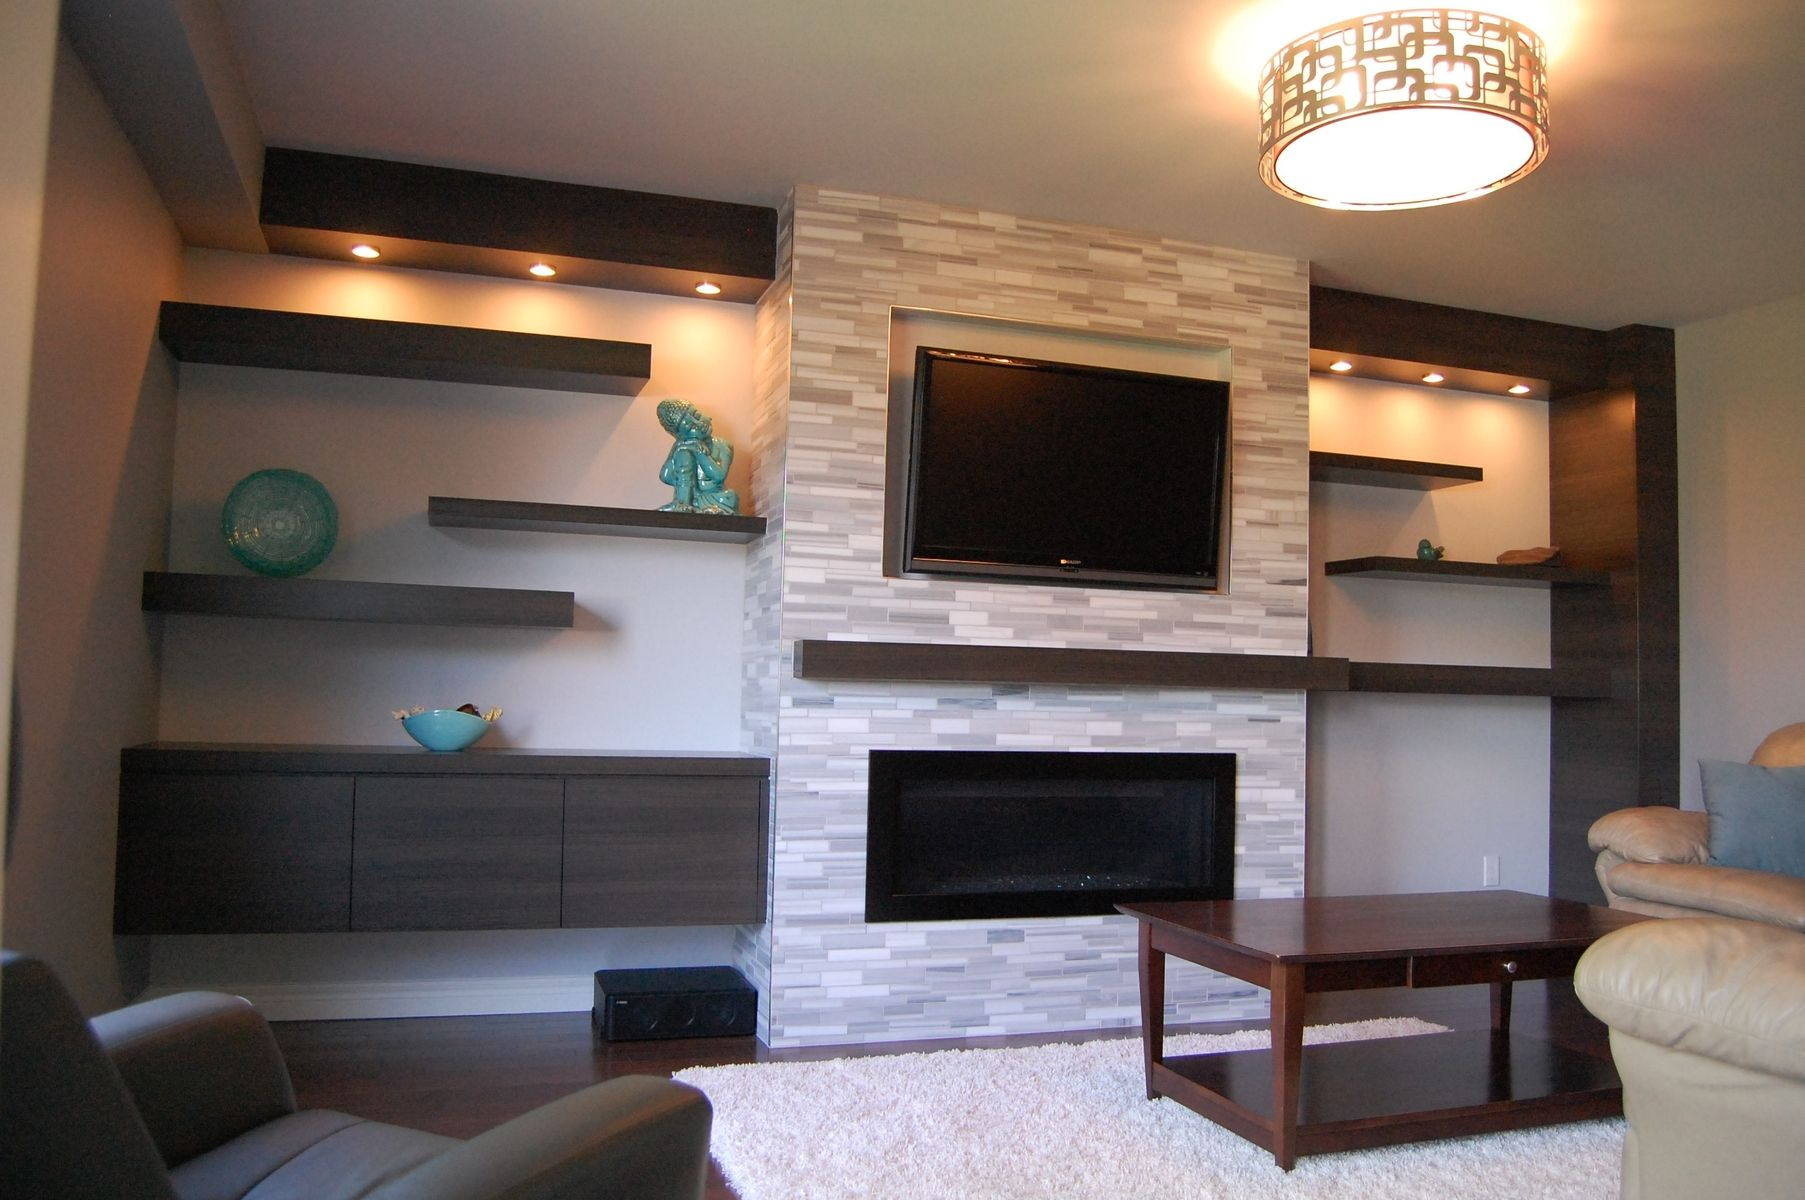 Wall Unit Entertainment Center with Fireplace New Custom Modern Wall Unit Made Pletely From A Printed